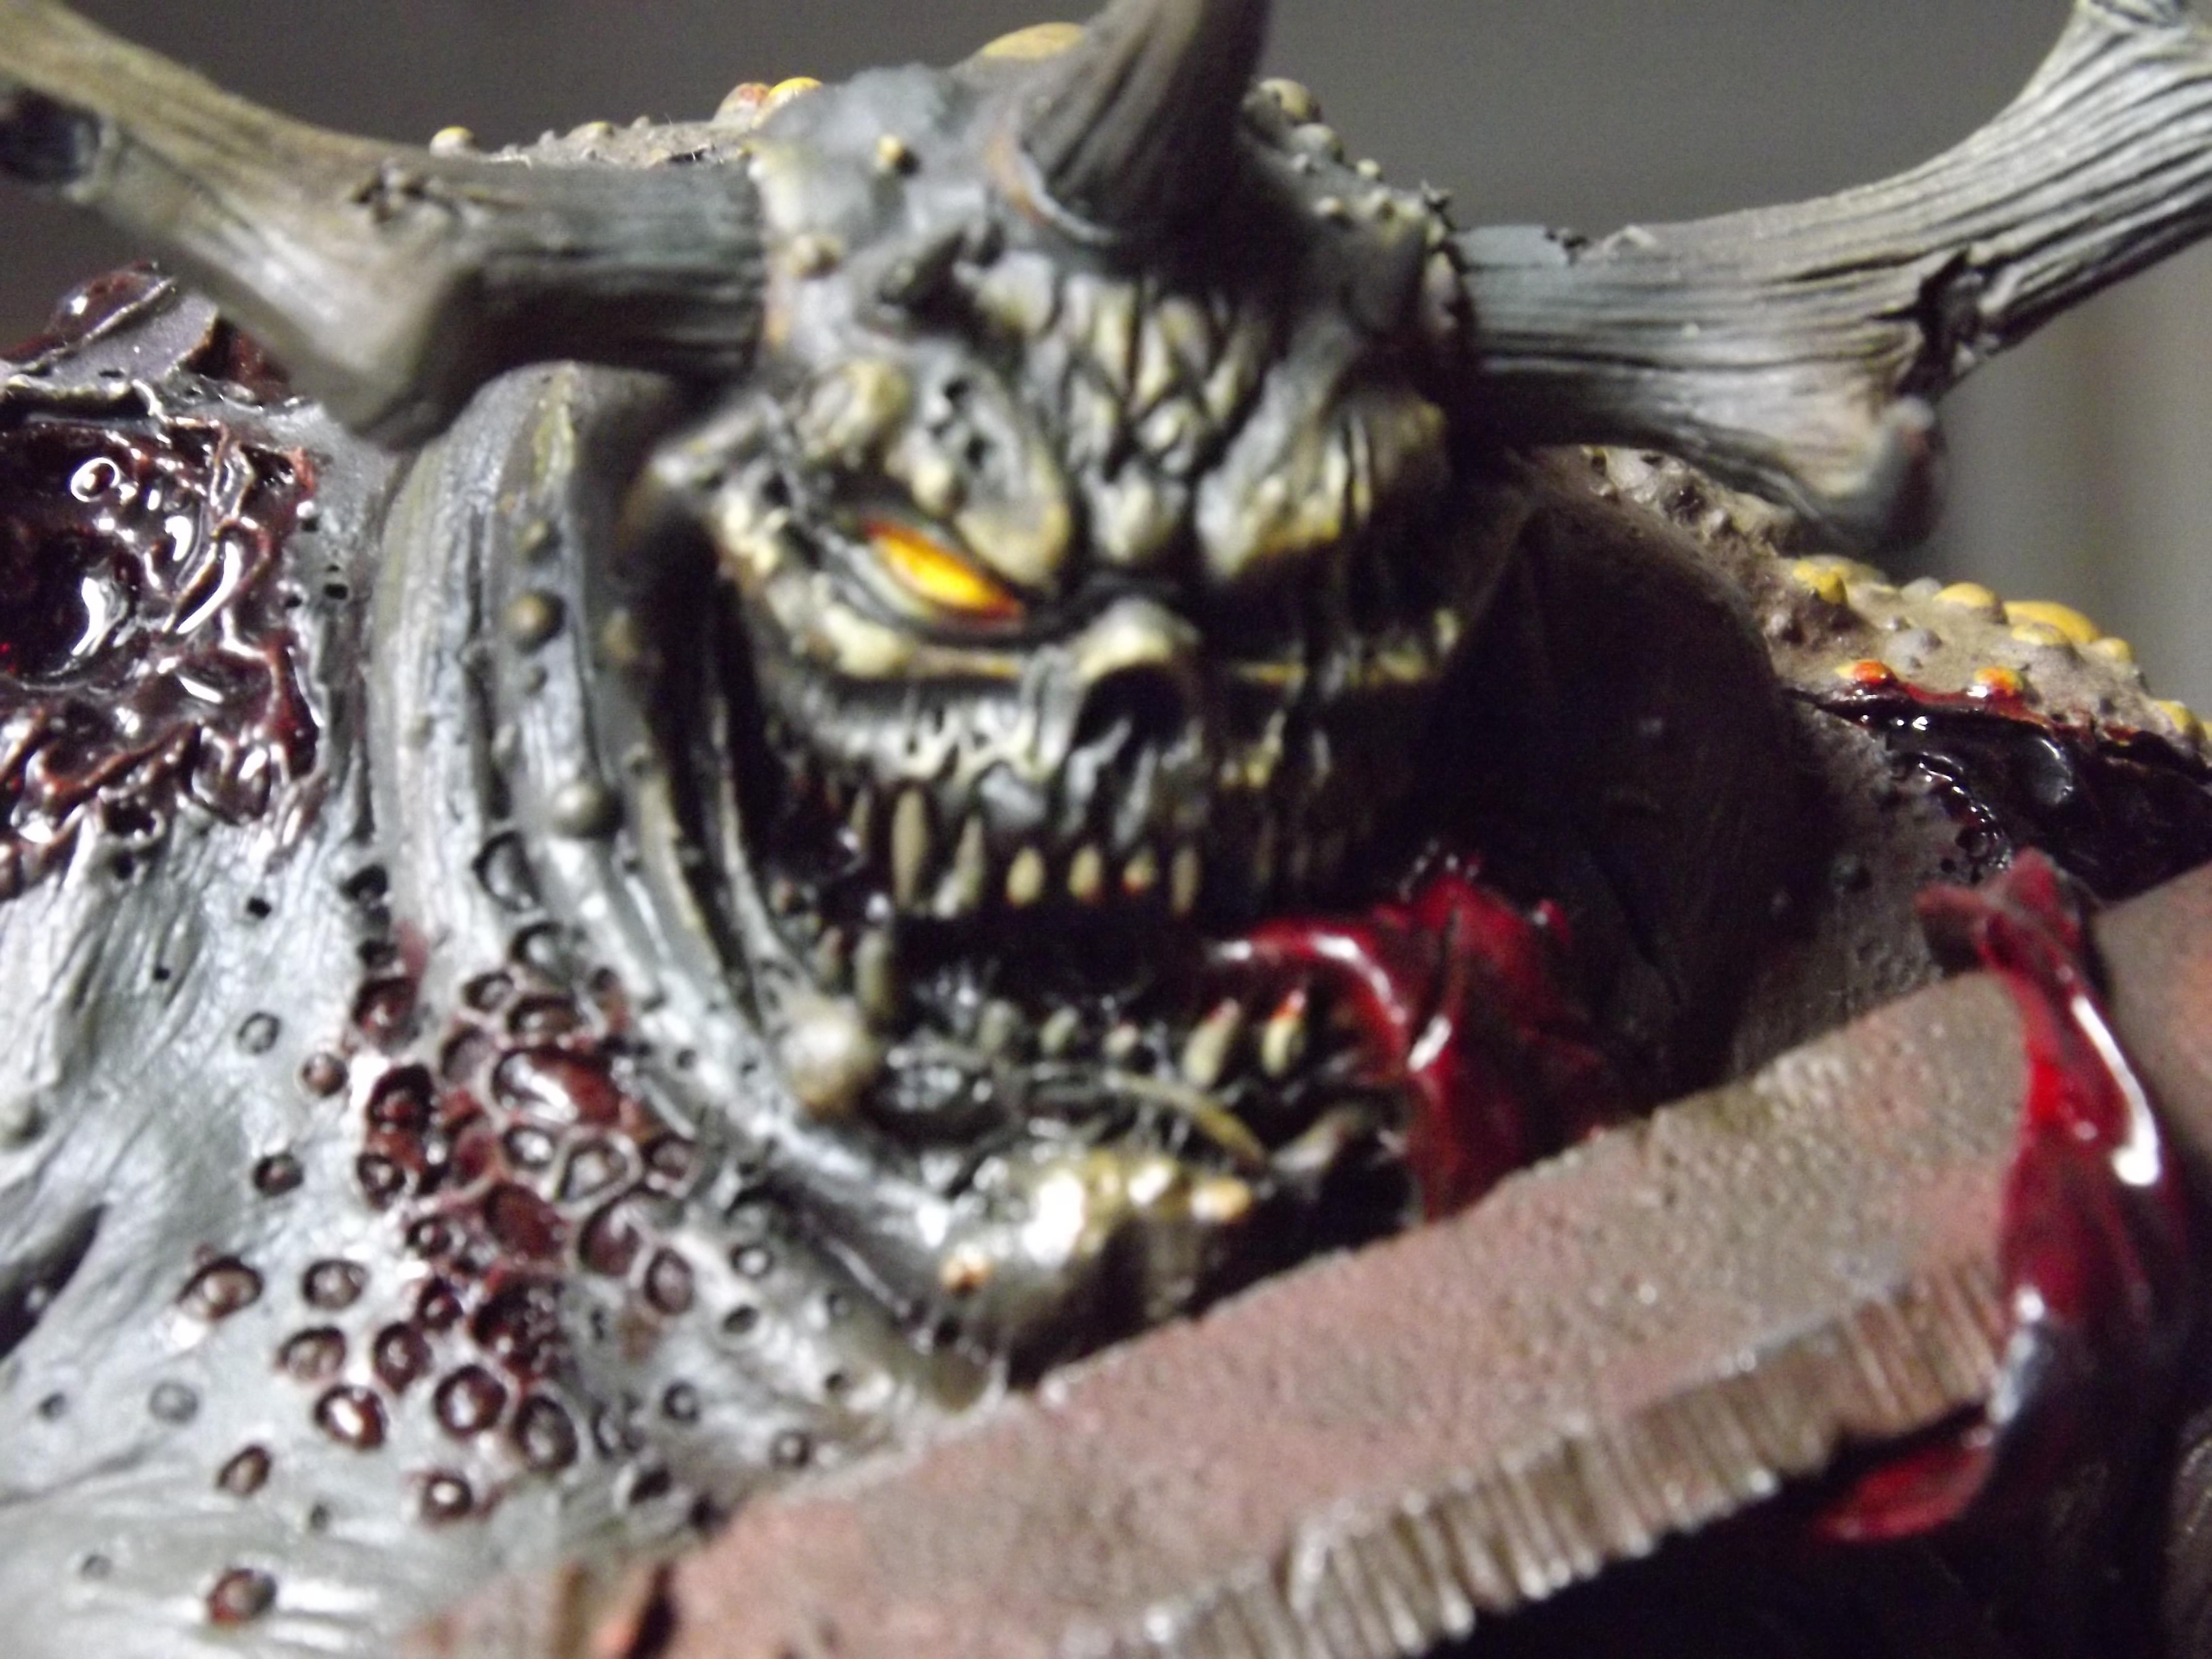 Great Unclean One, Great Unclean One